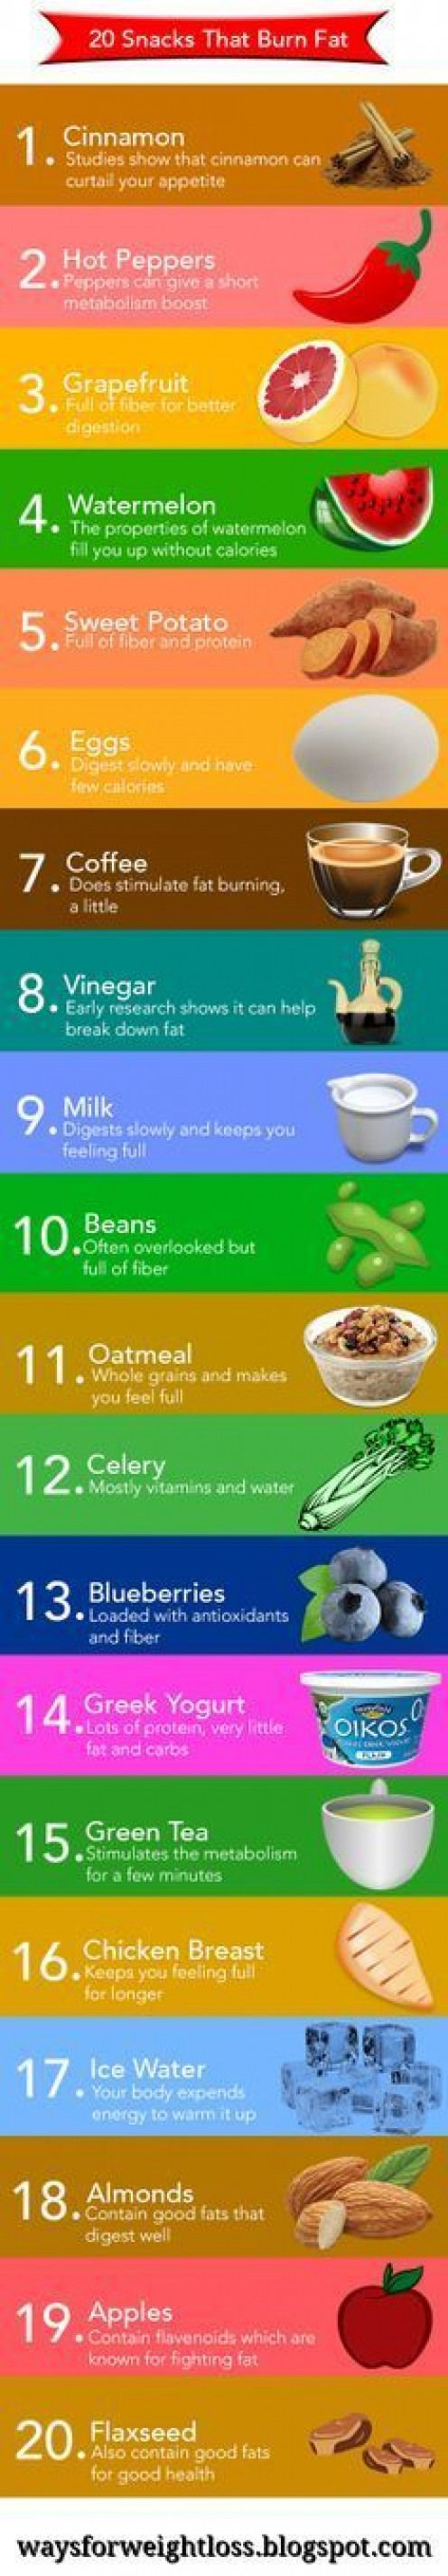 20 Snacks that Burn Fat | burn fat | Pinterest | Diet, Weight Loss and  Healthy